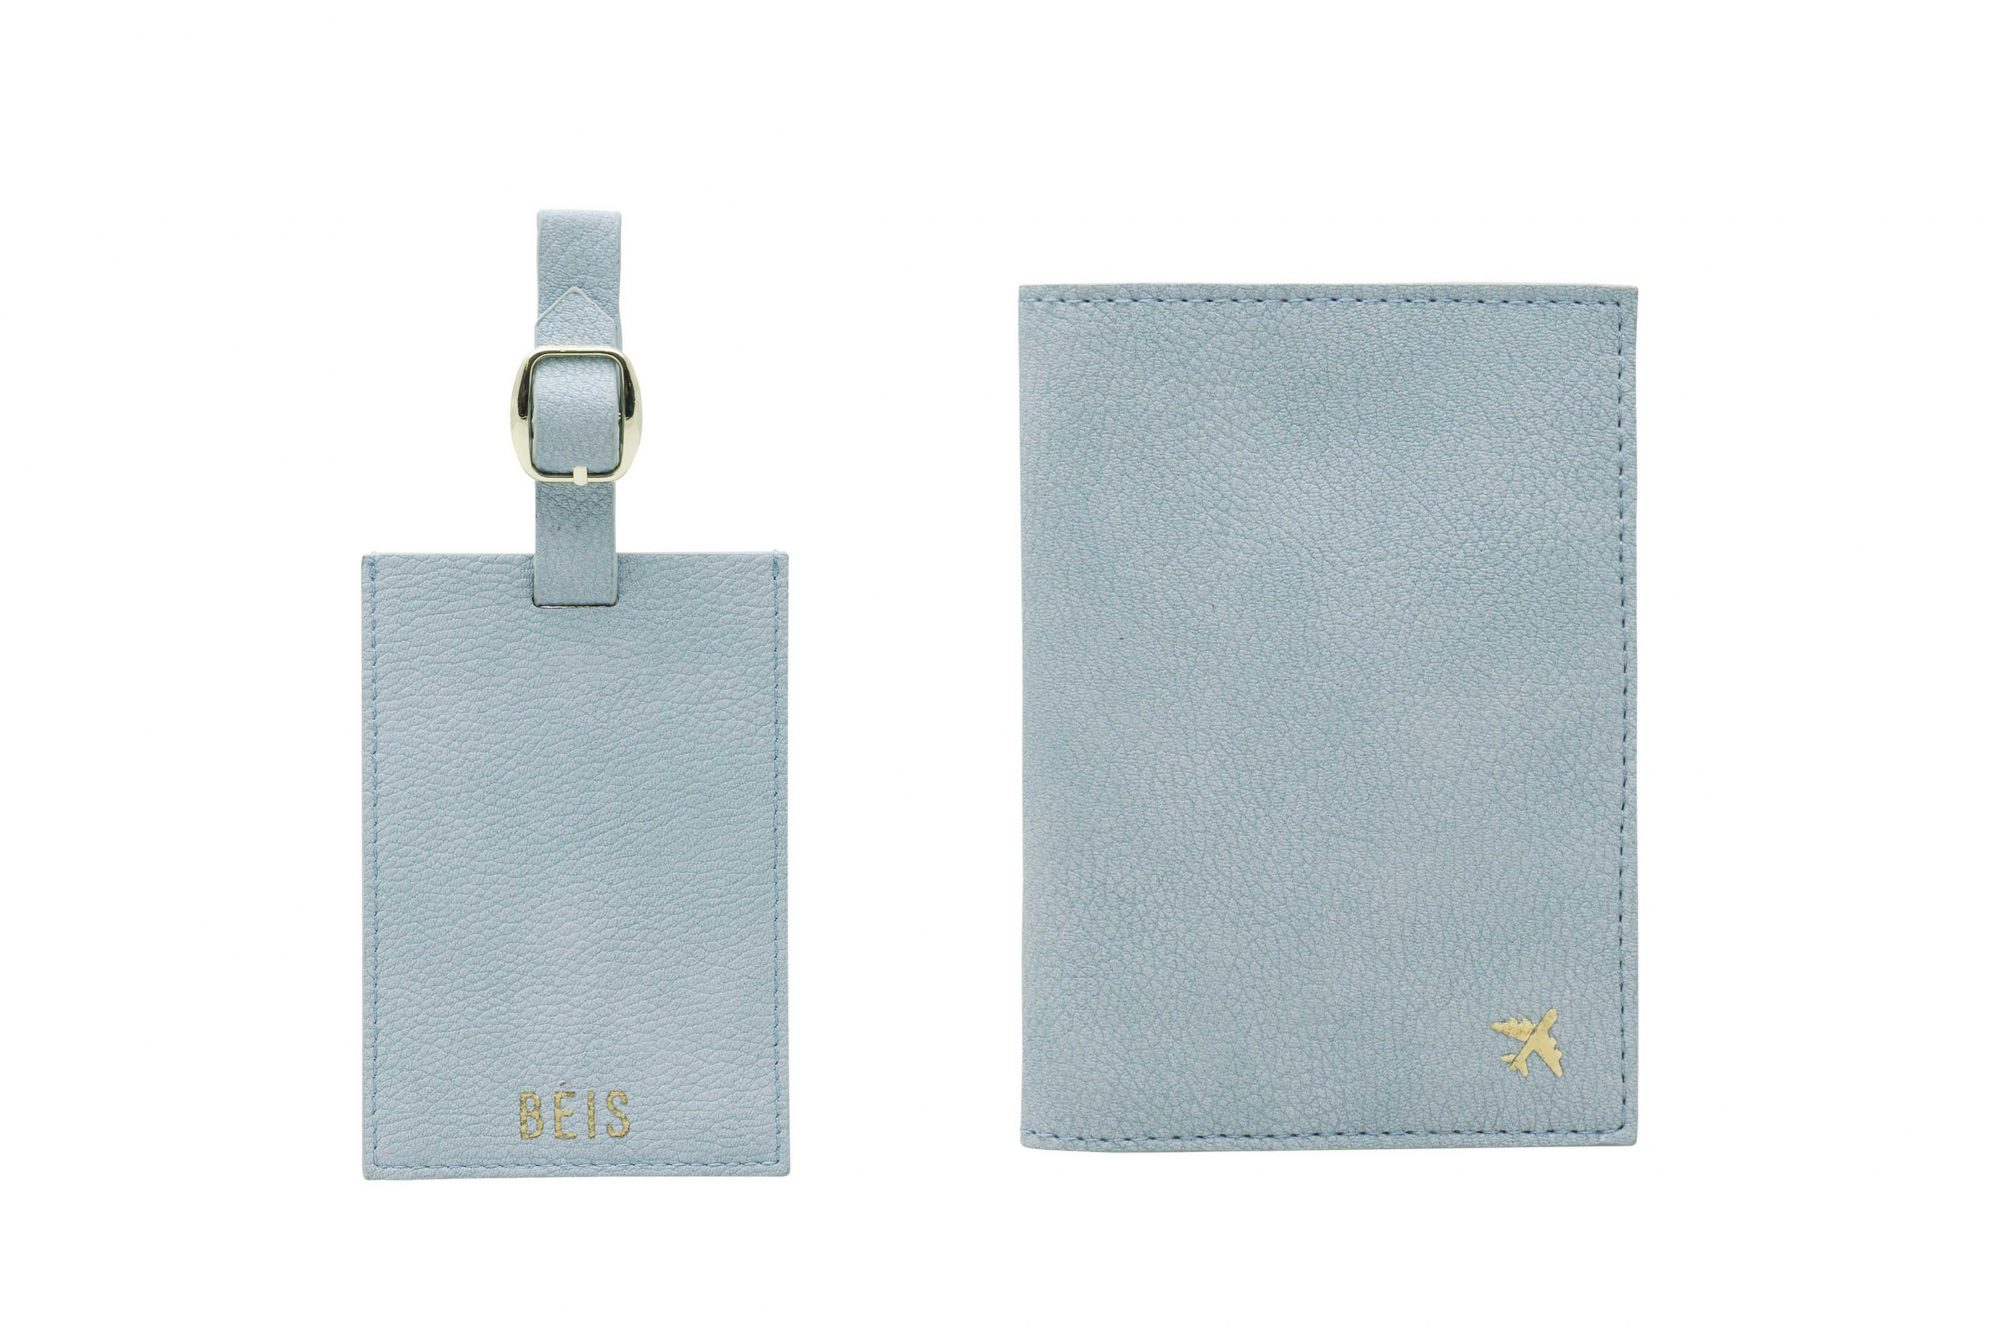 Béis Luggage Tag and Passport Holder